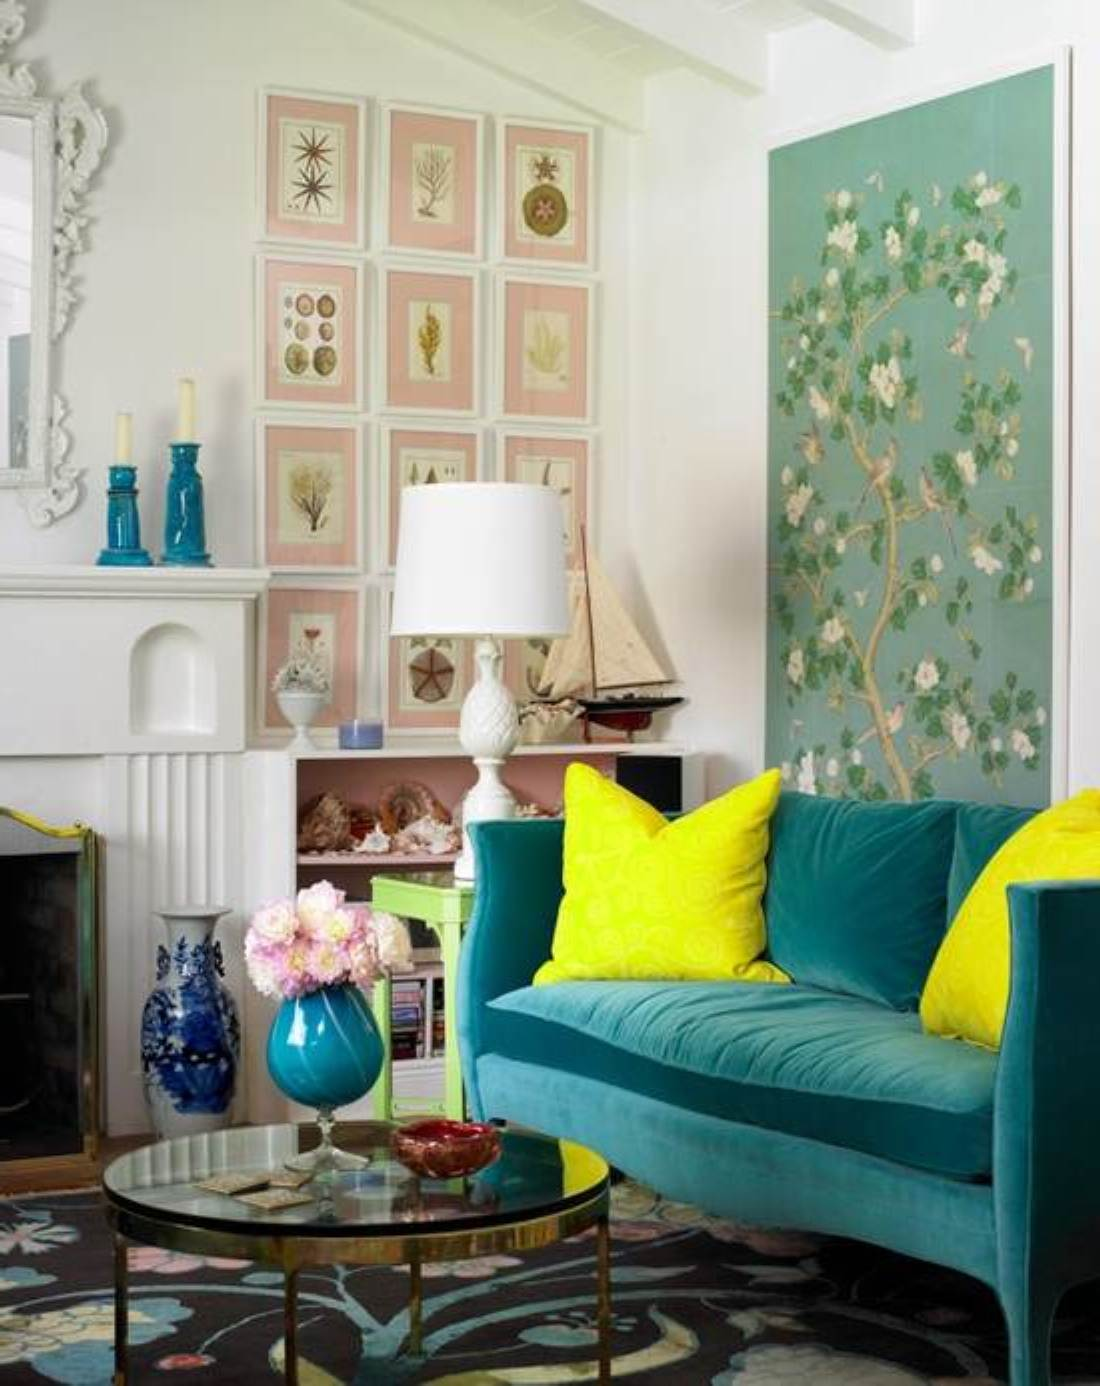 Some easy rules of small space decorating live diy ideas for Decorating ideas for a small living room